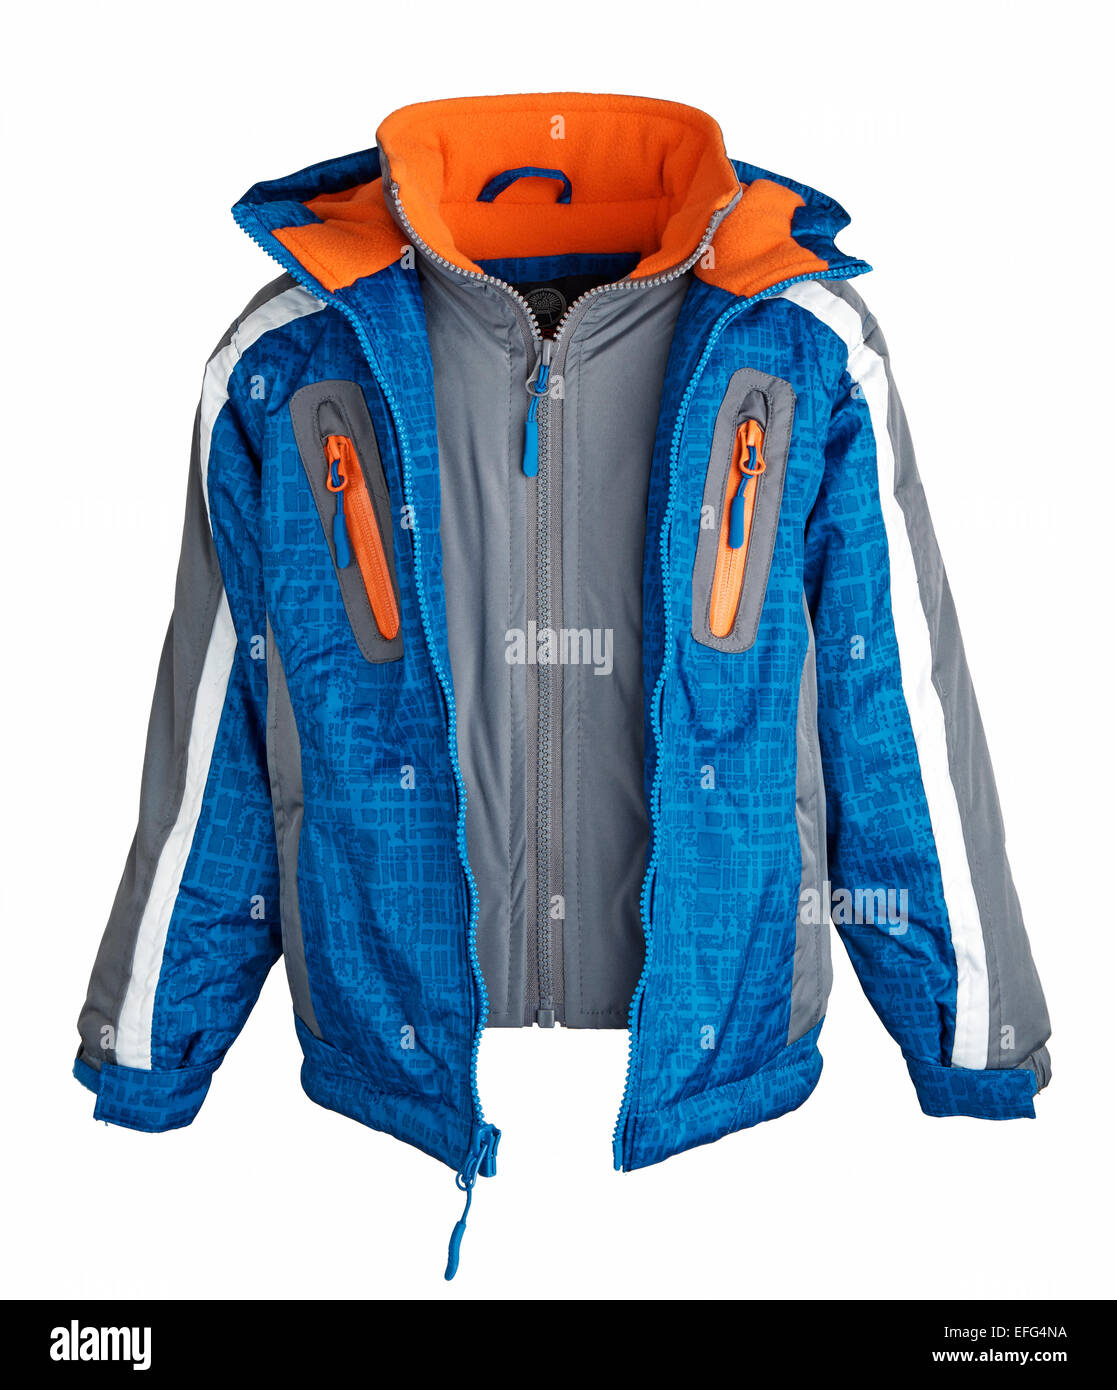 Blue winter jacket - Stock Image